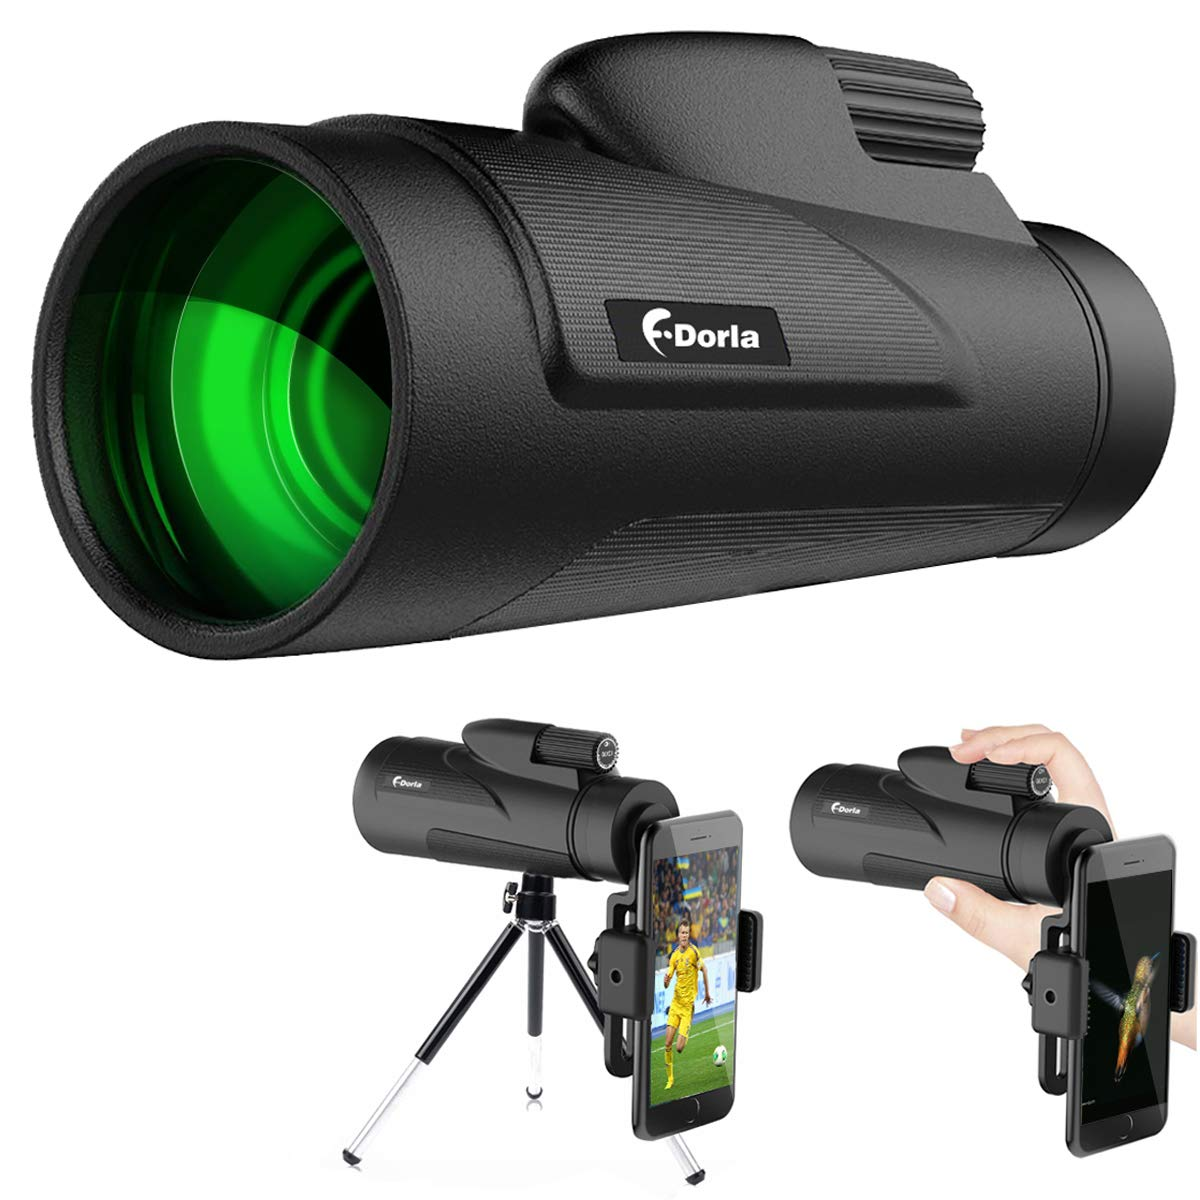 12X50 Monocular Telescope, F.DORLA High Power Prism Low Night Vision Waterproof Fogproof Spotting Scope for Adults with Cell Phone Adapter and Tripod for Bird Watching Hunting Camping (Style1) by F.DORLA